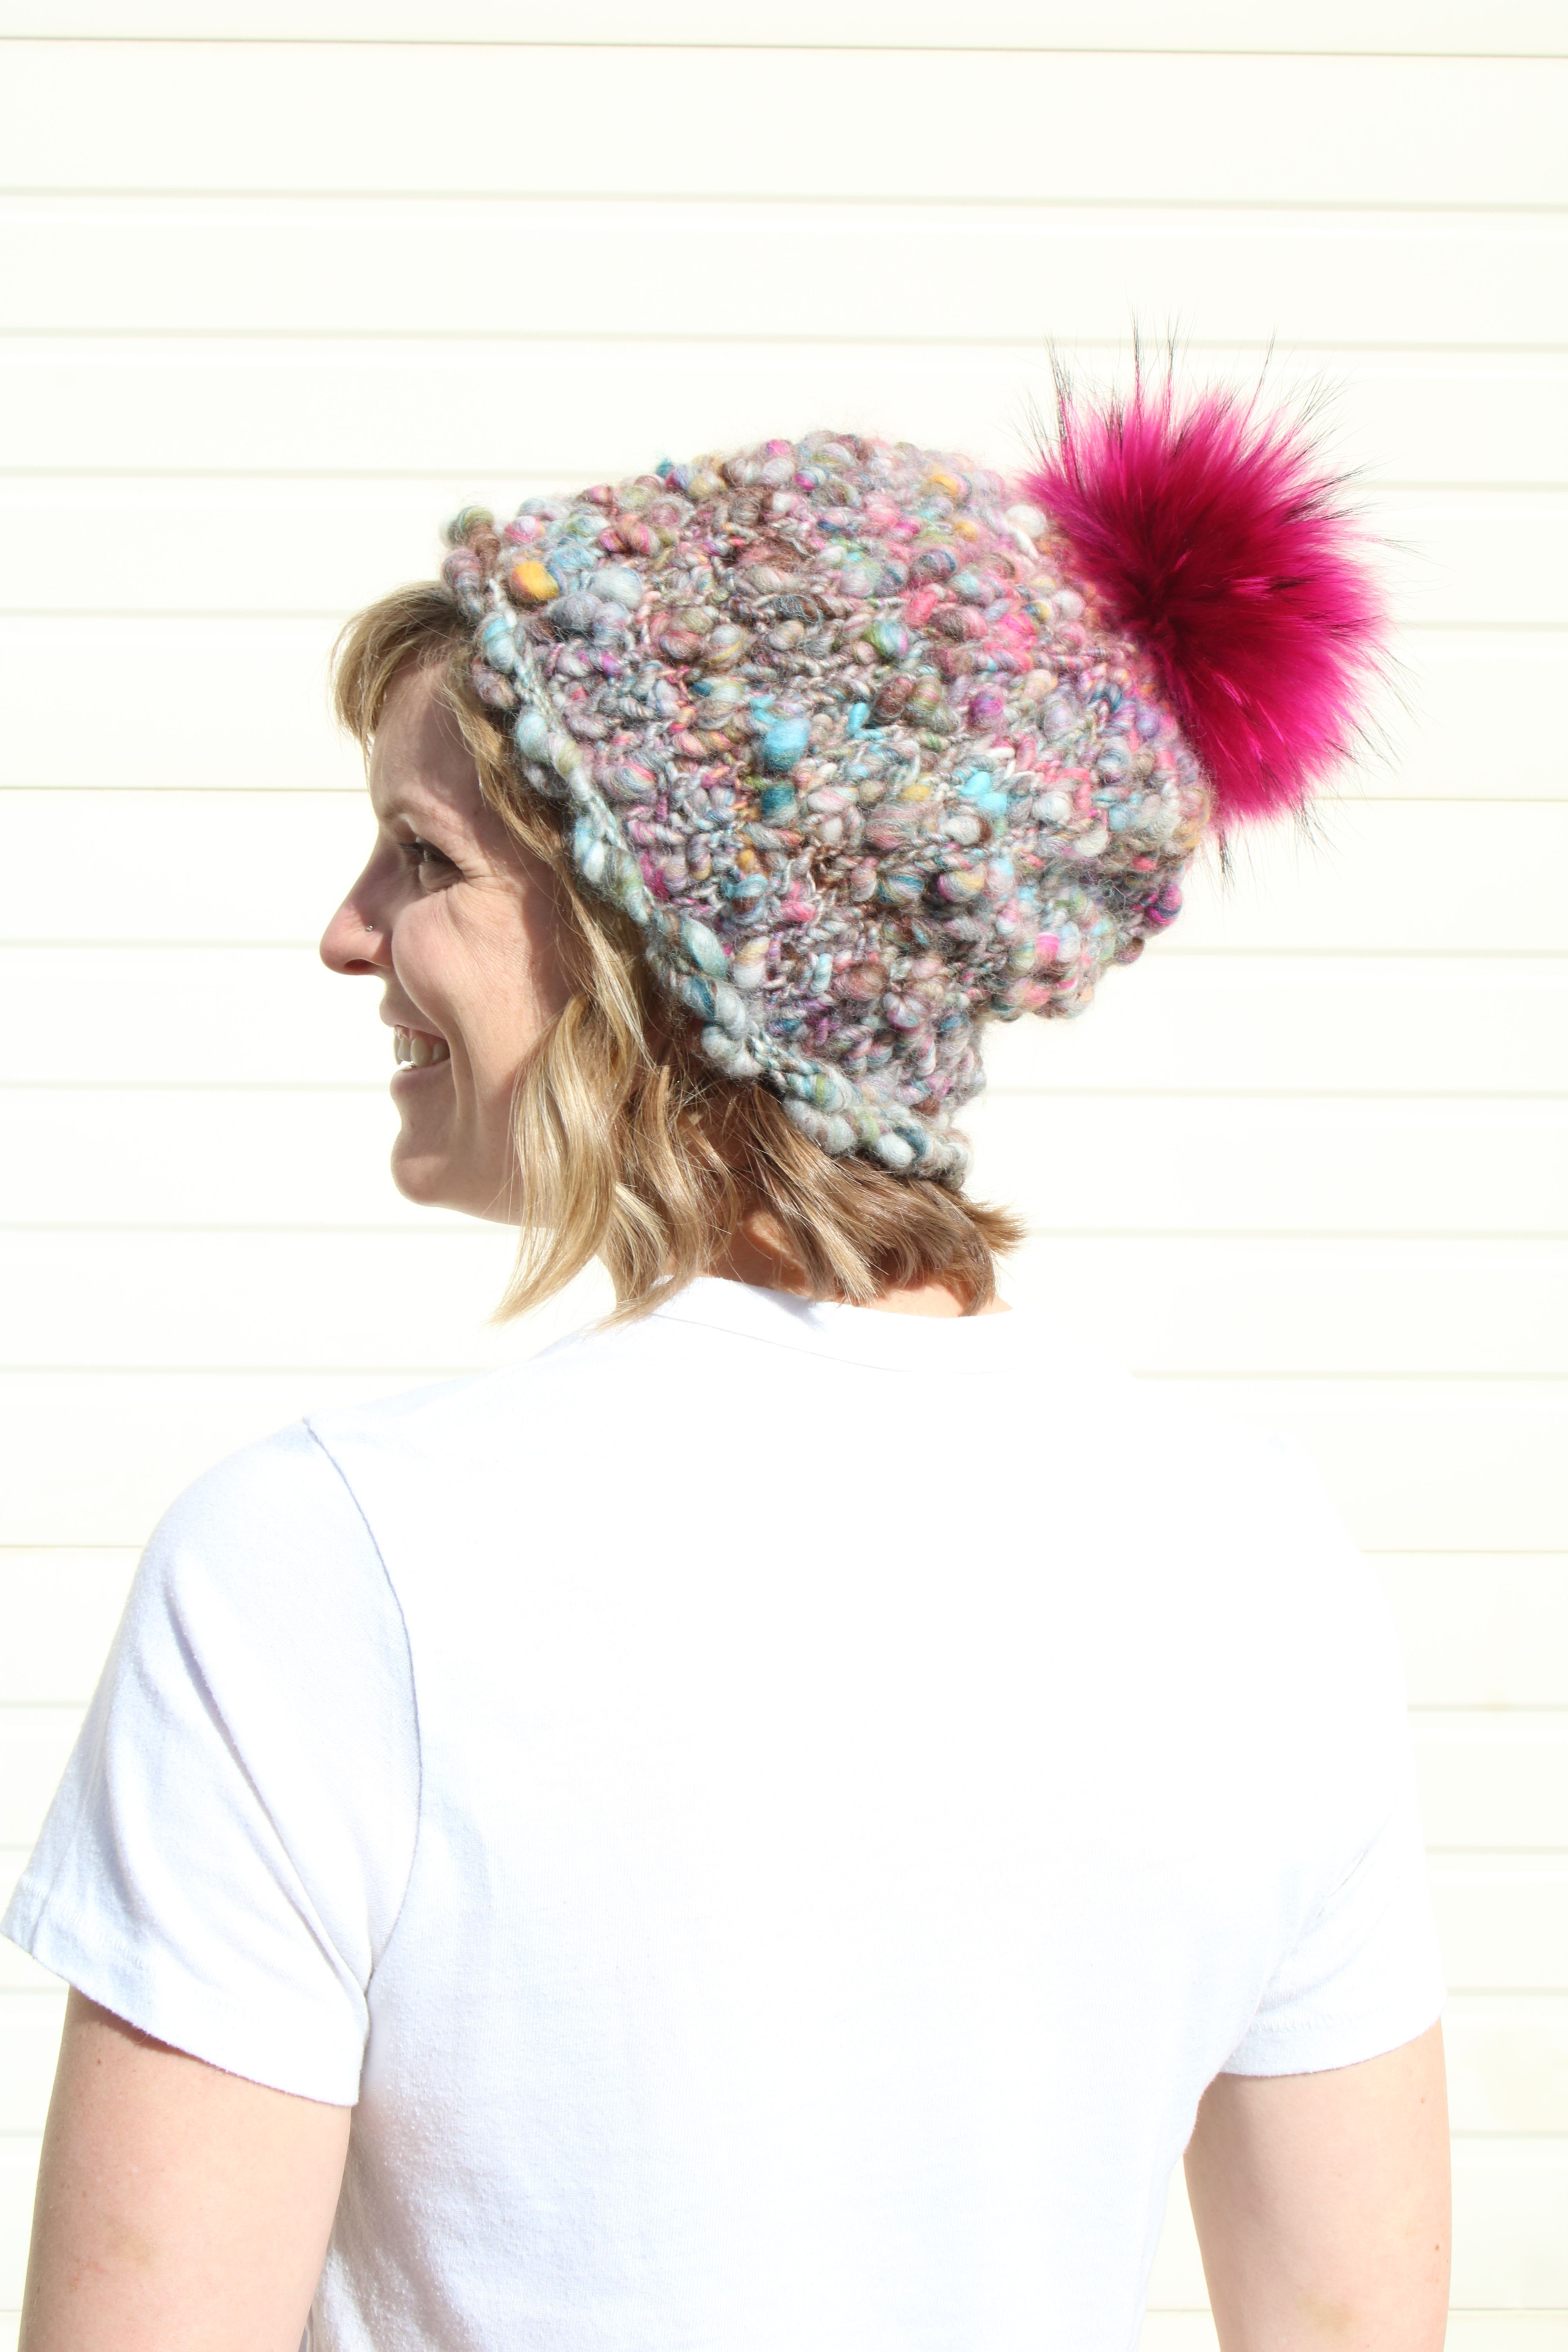 c9c0ce074f3 ... Jimmy Beans Wool. The Knit Collage  Perfect Slouch Hat  is the  prettiest hat for this warmer weather